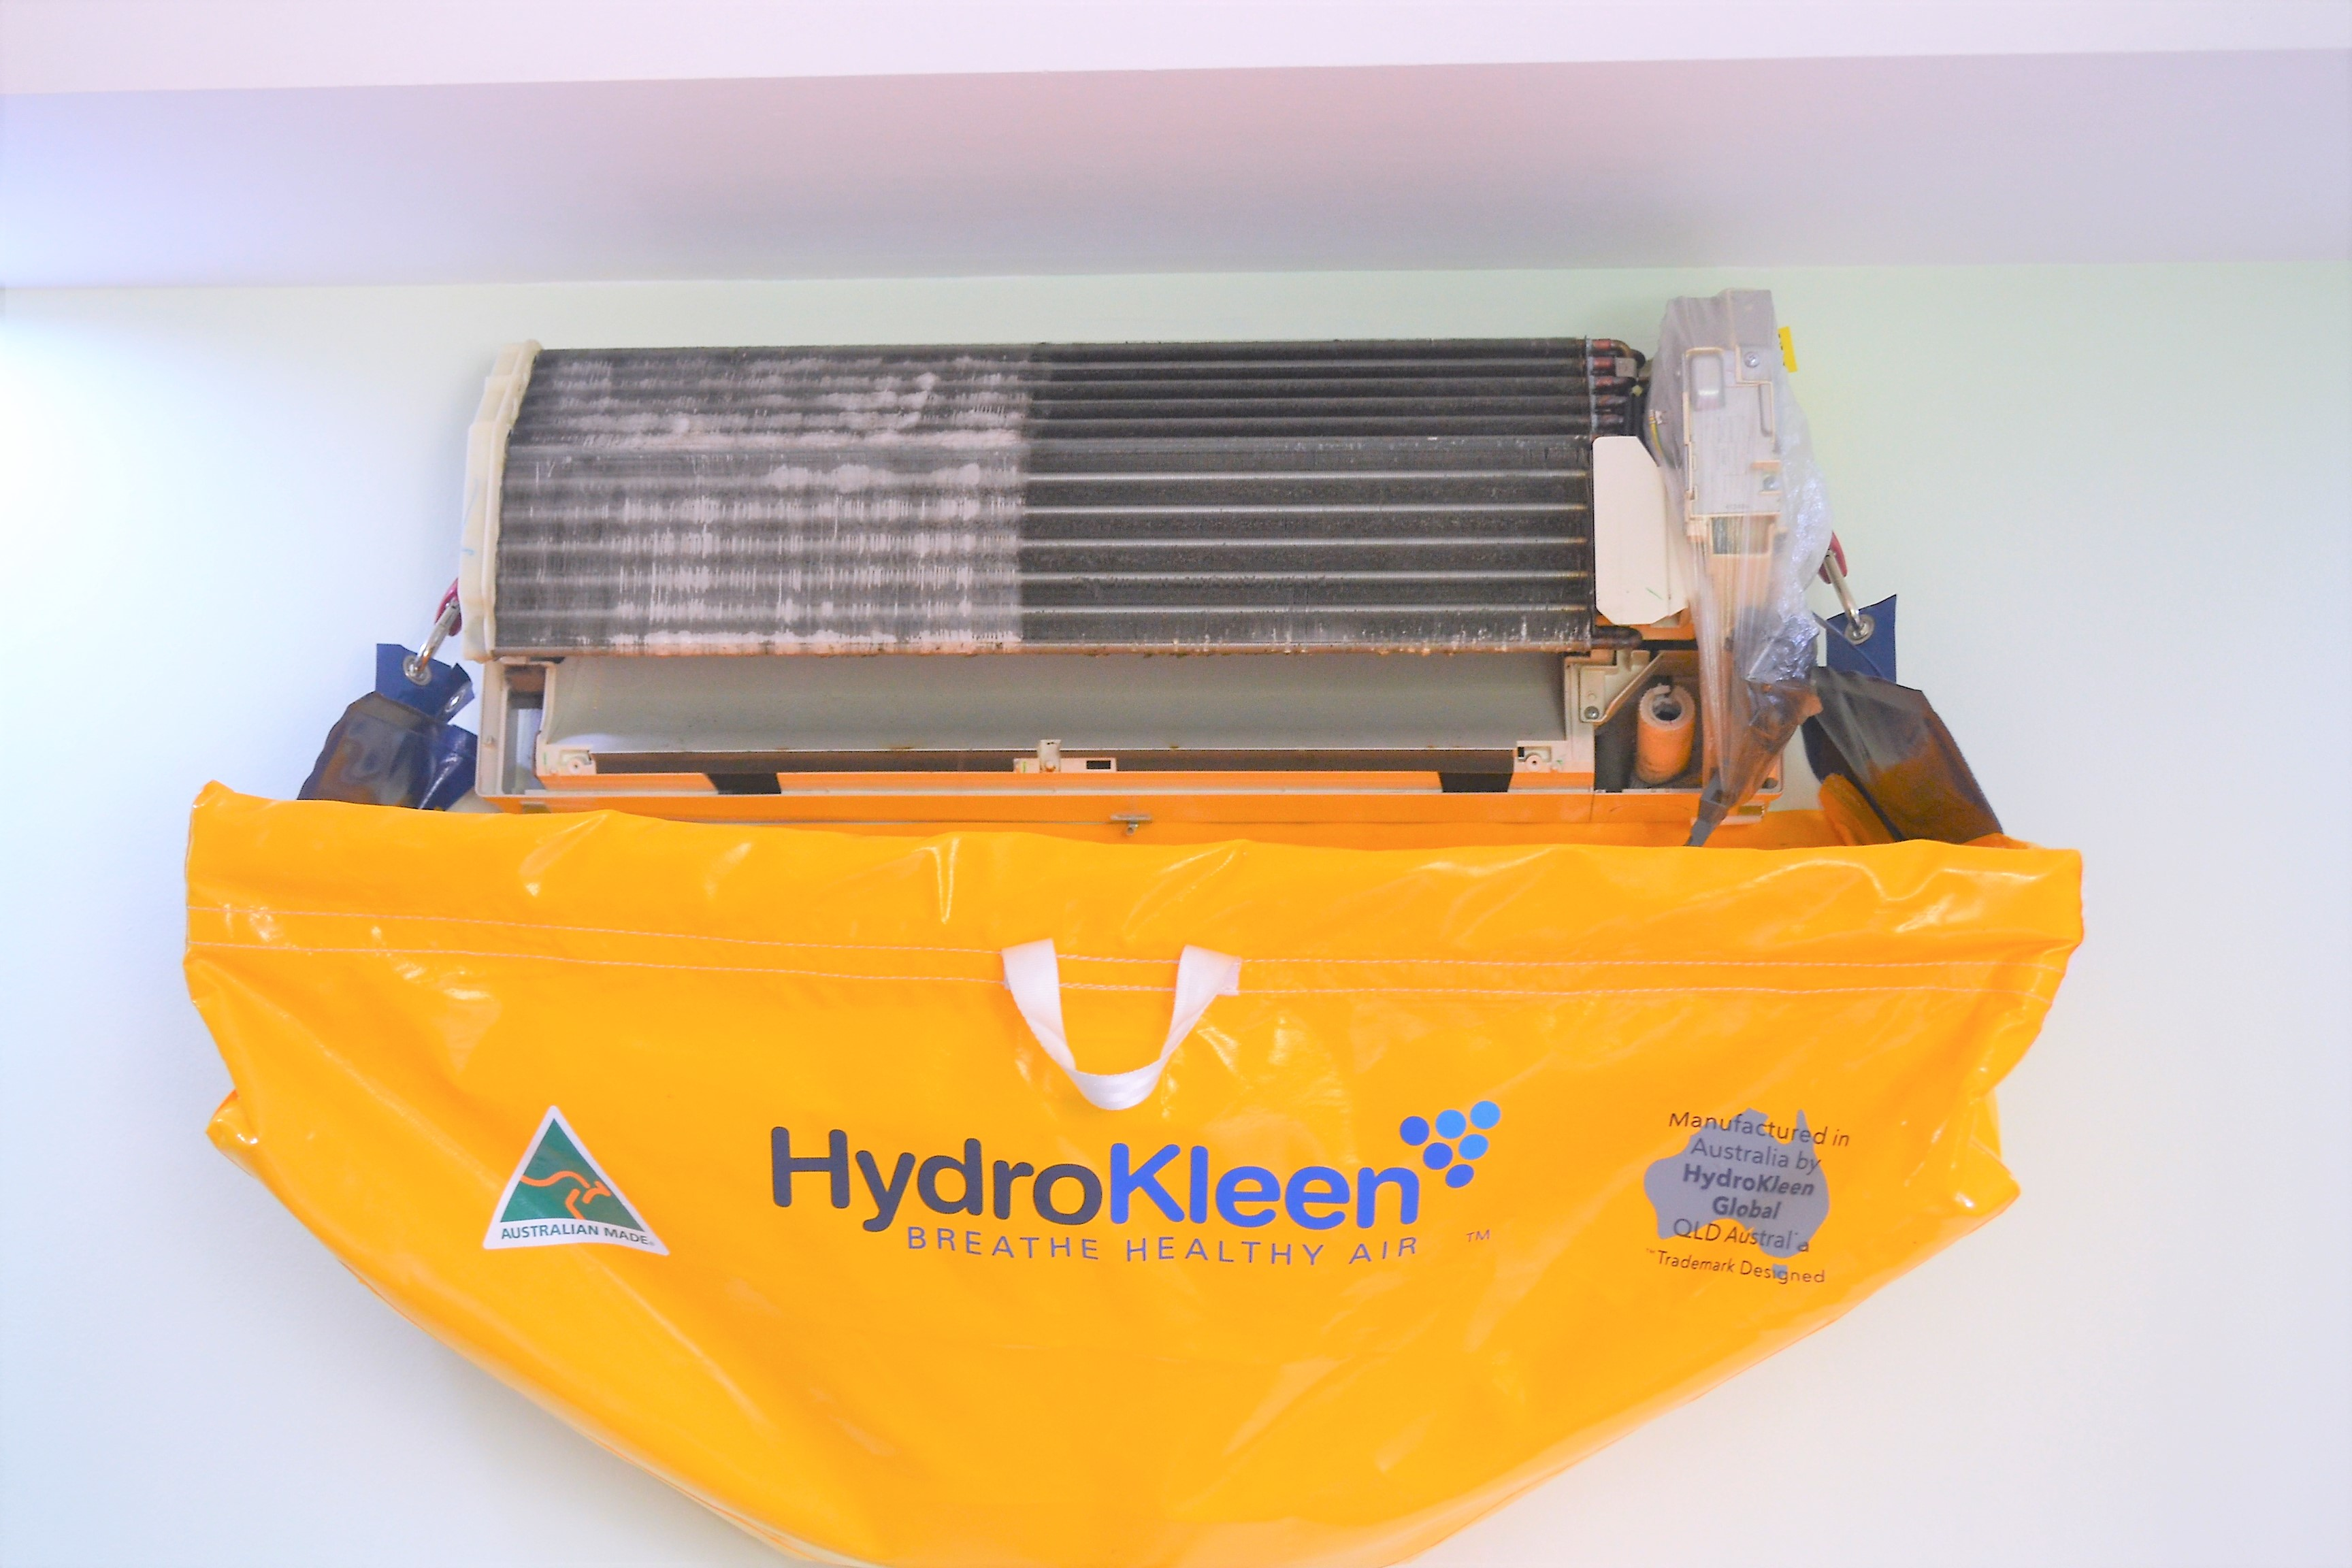 Hydrokleen Air Conditioning Cleaning And Servicing Kbe